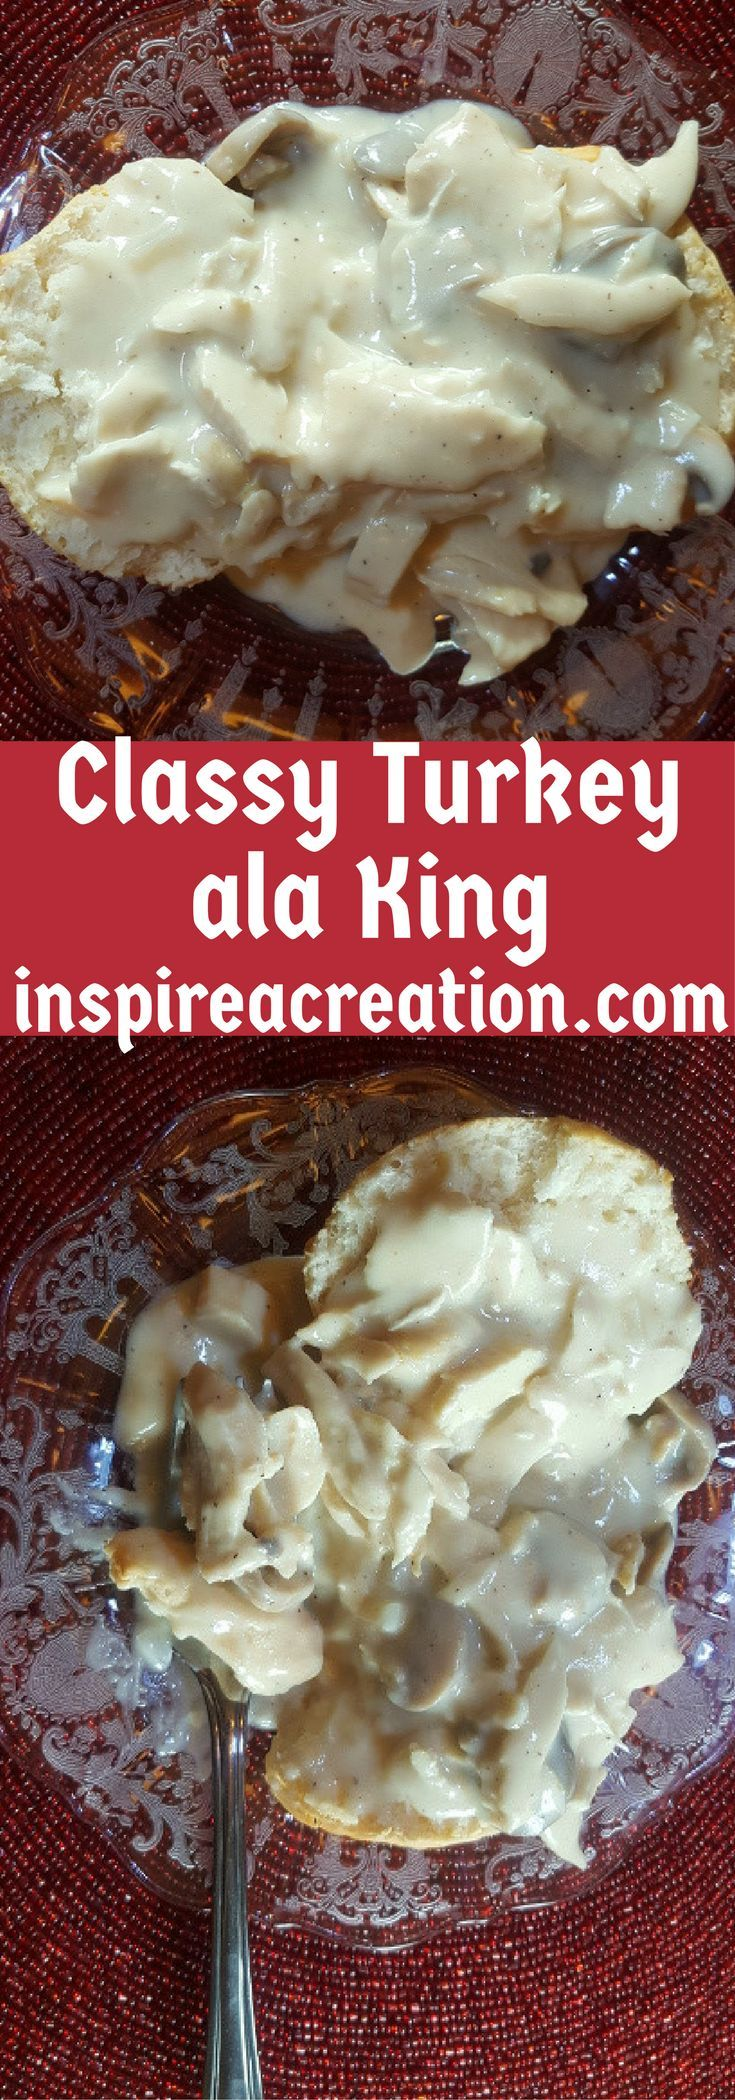 With quick and easy Classy Turkey ala King, you can use leftover turkey or chicken and fresh or canned mushrooms in this recipe. #turkey #leftovers #biscuits #maincourse #recipe #recipes